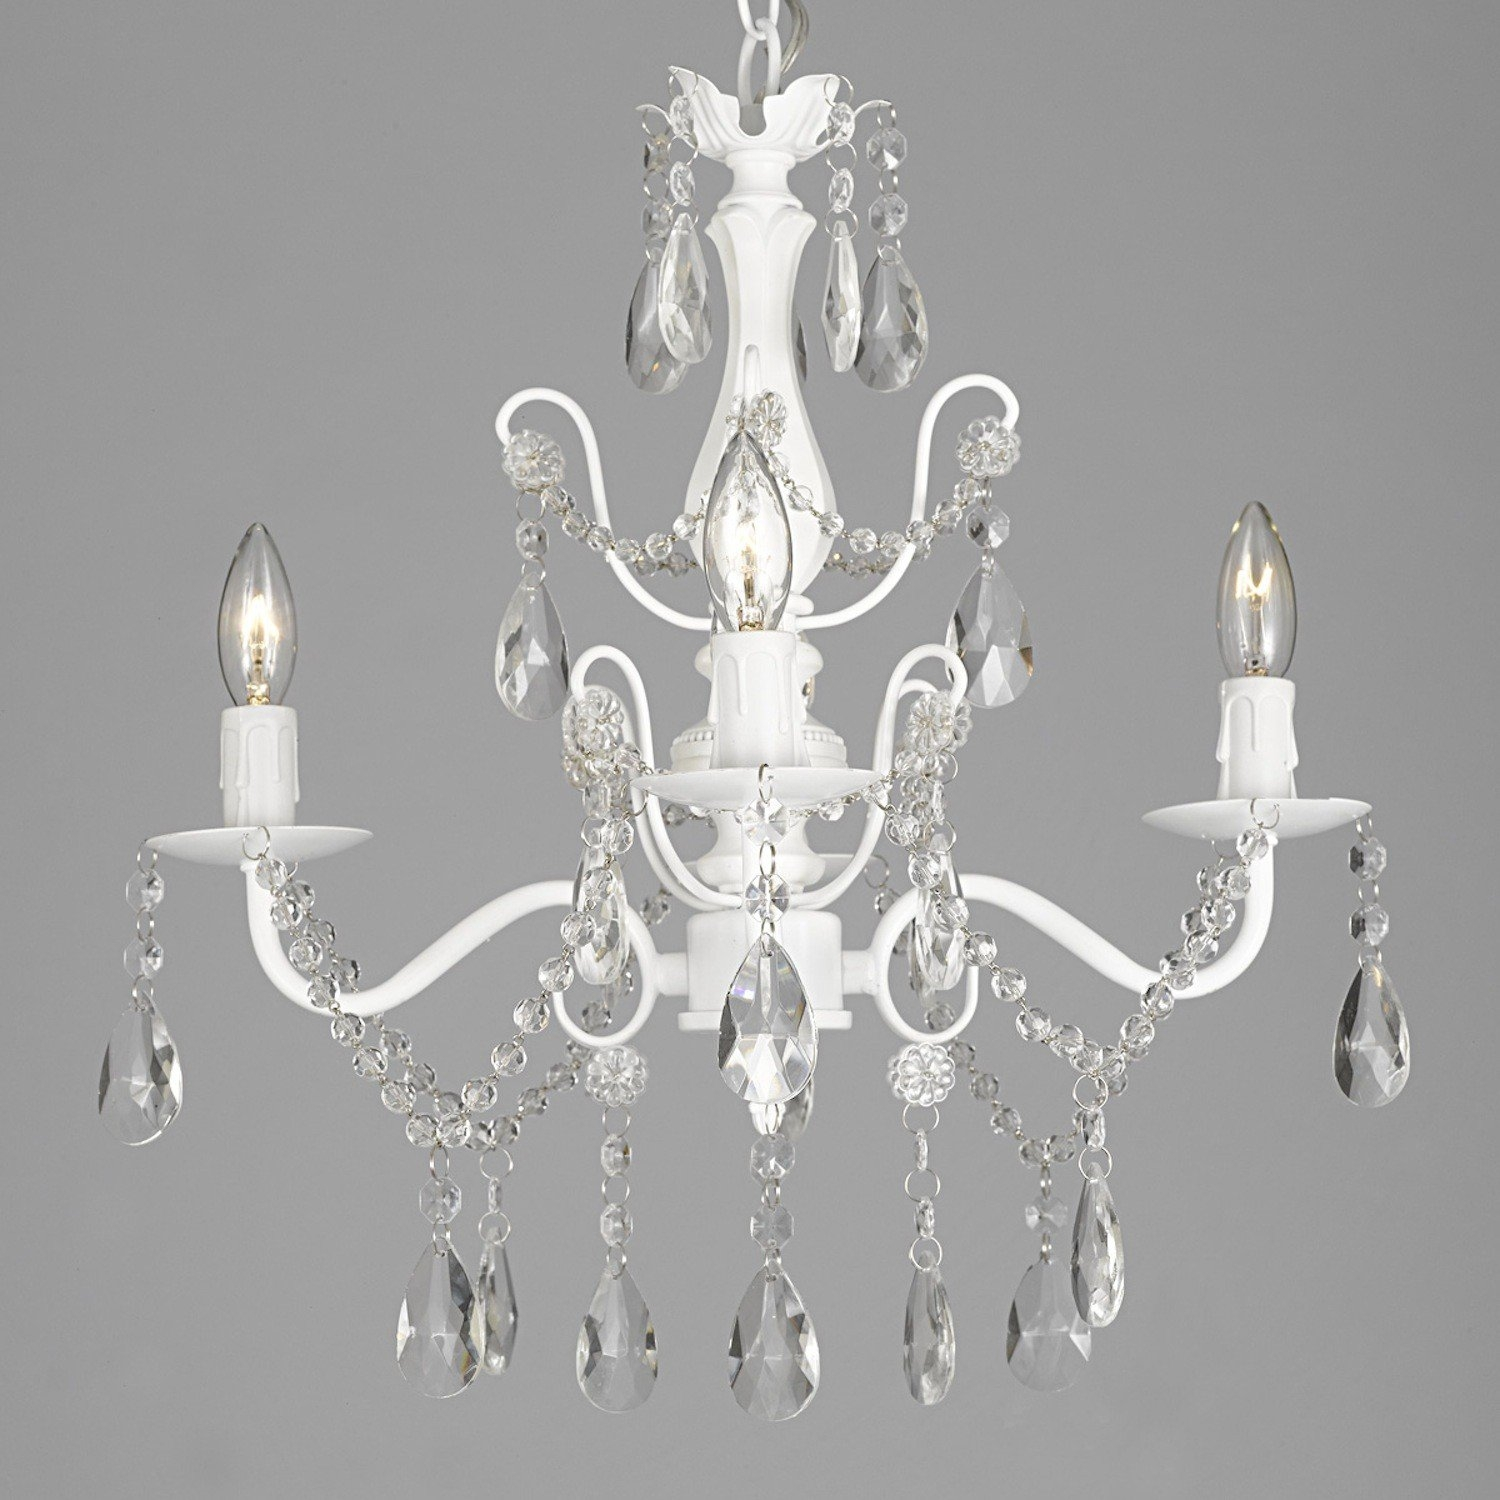 Cheap Crystal Chandeliers Beautiful Cheap Crystal Chandeliers Pertaining To 4 Light Crystal Chandeliers (Image 4 of 25)